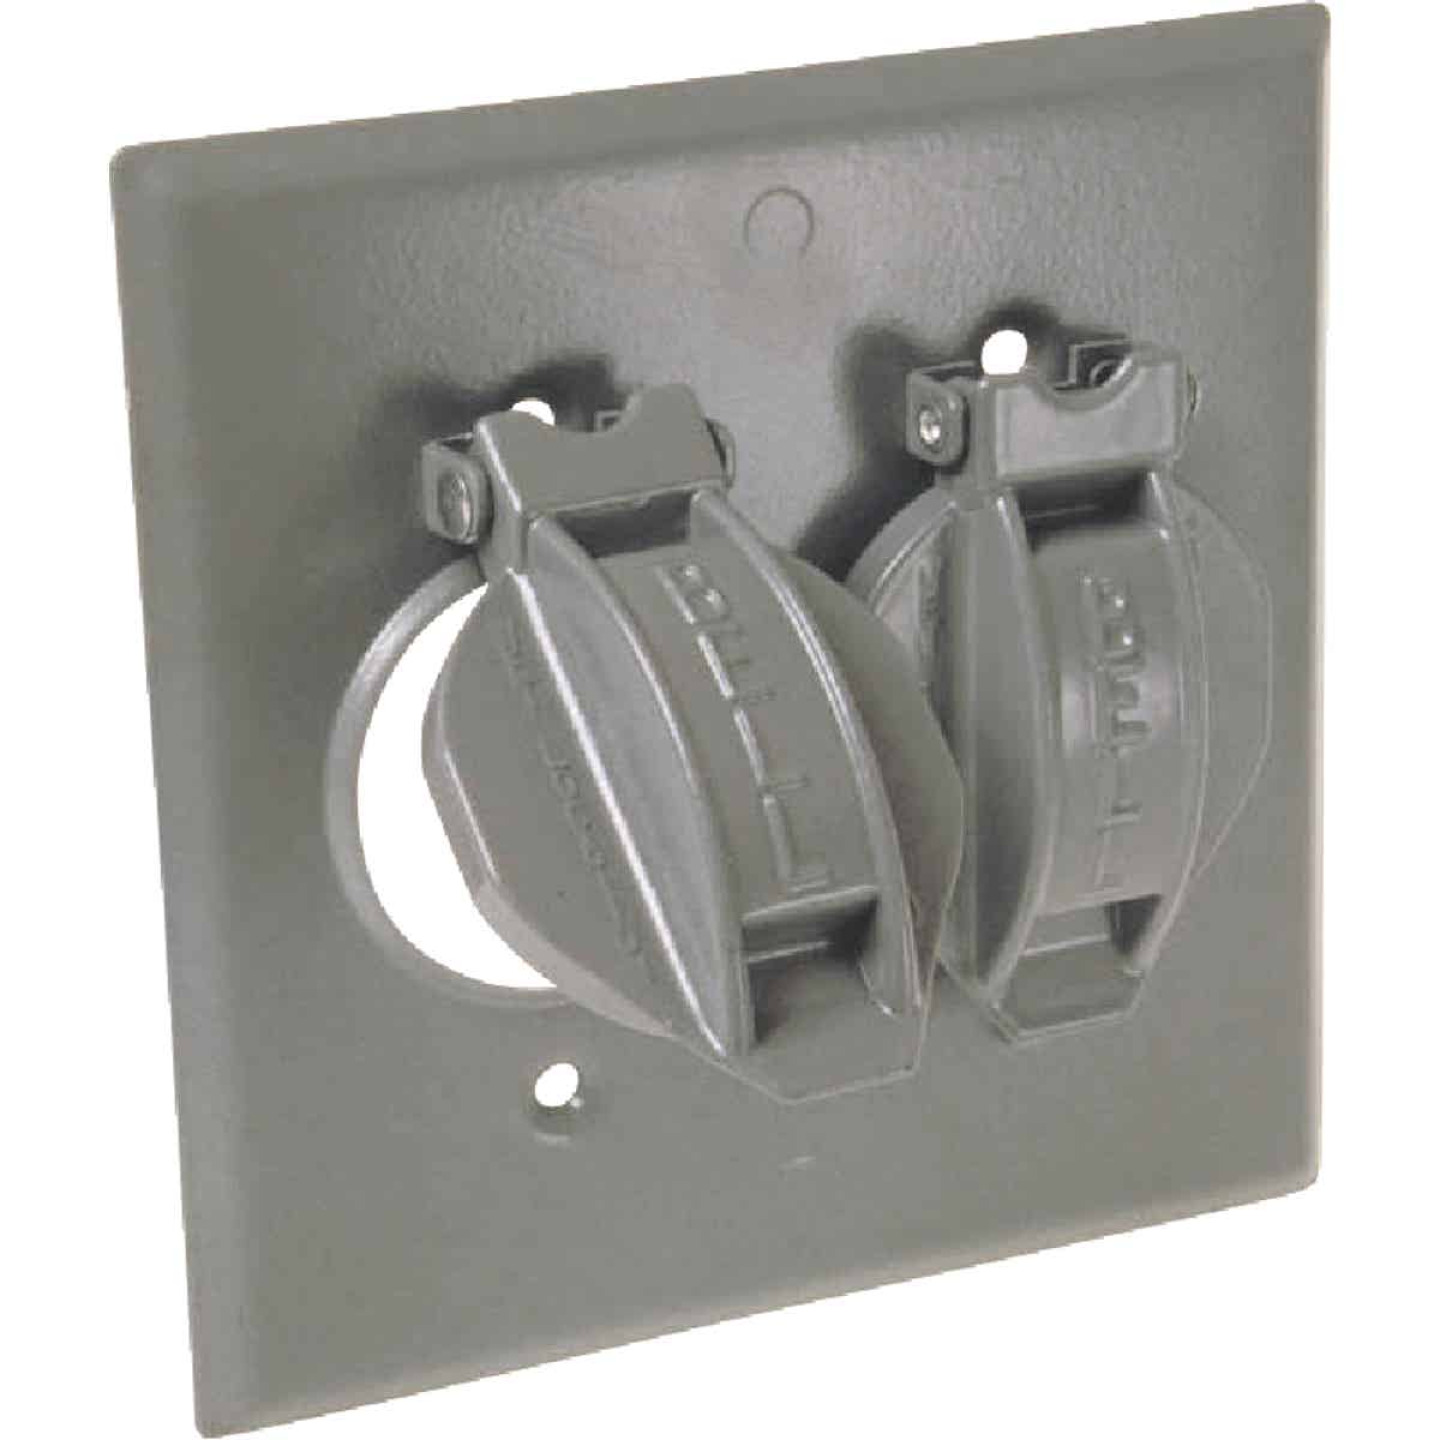 Hubbell 2-Gang Vertical Corrosion Resistant Aluminum Weatherproof Outdoor Outlet Cover Image 1